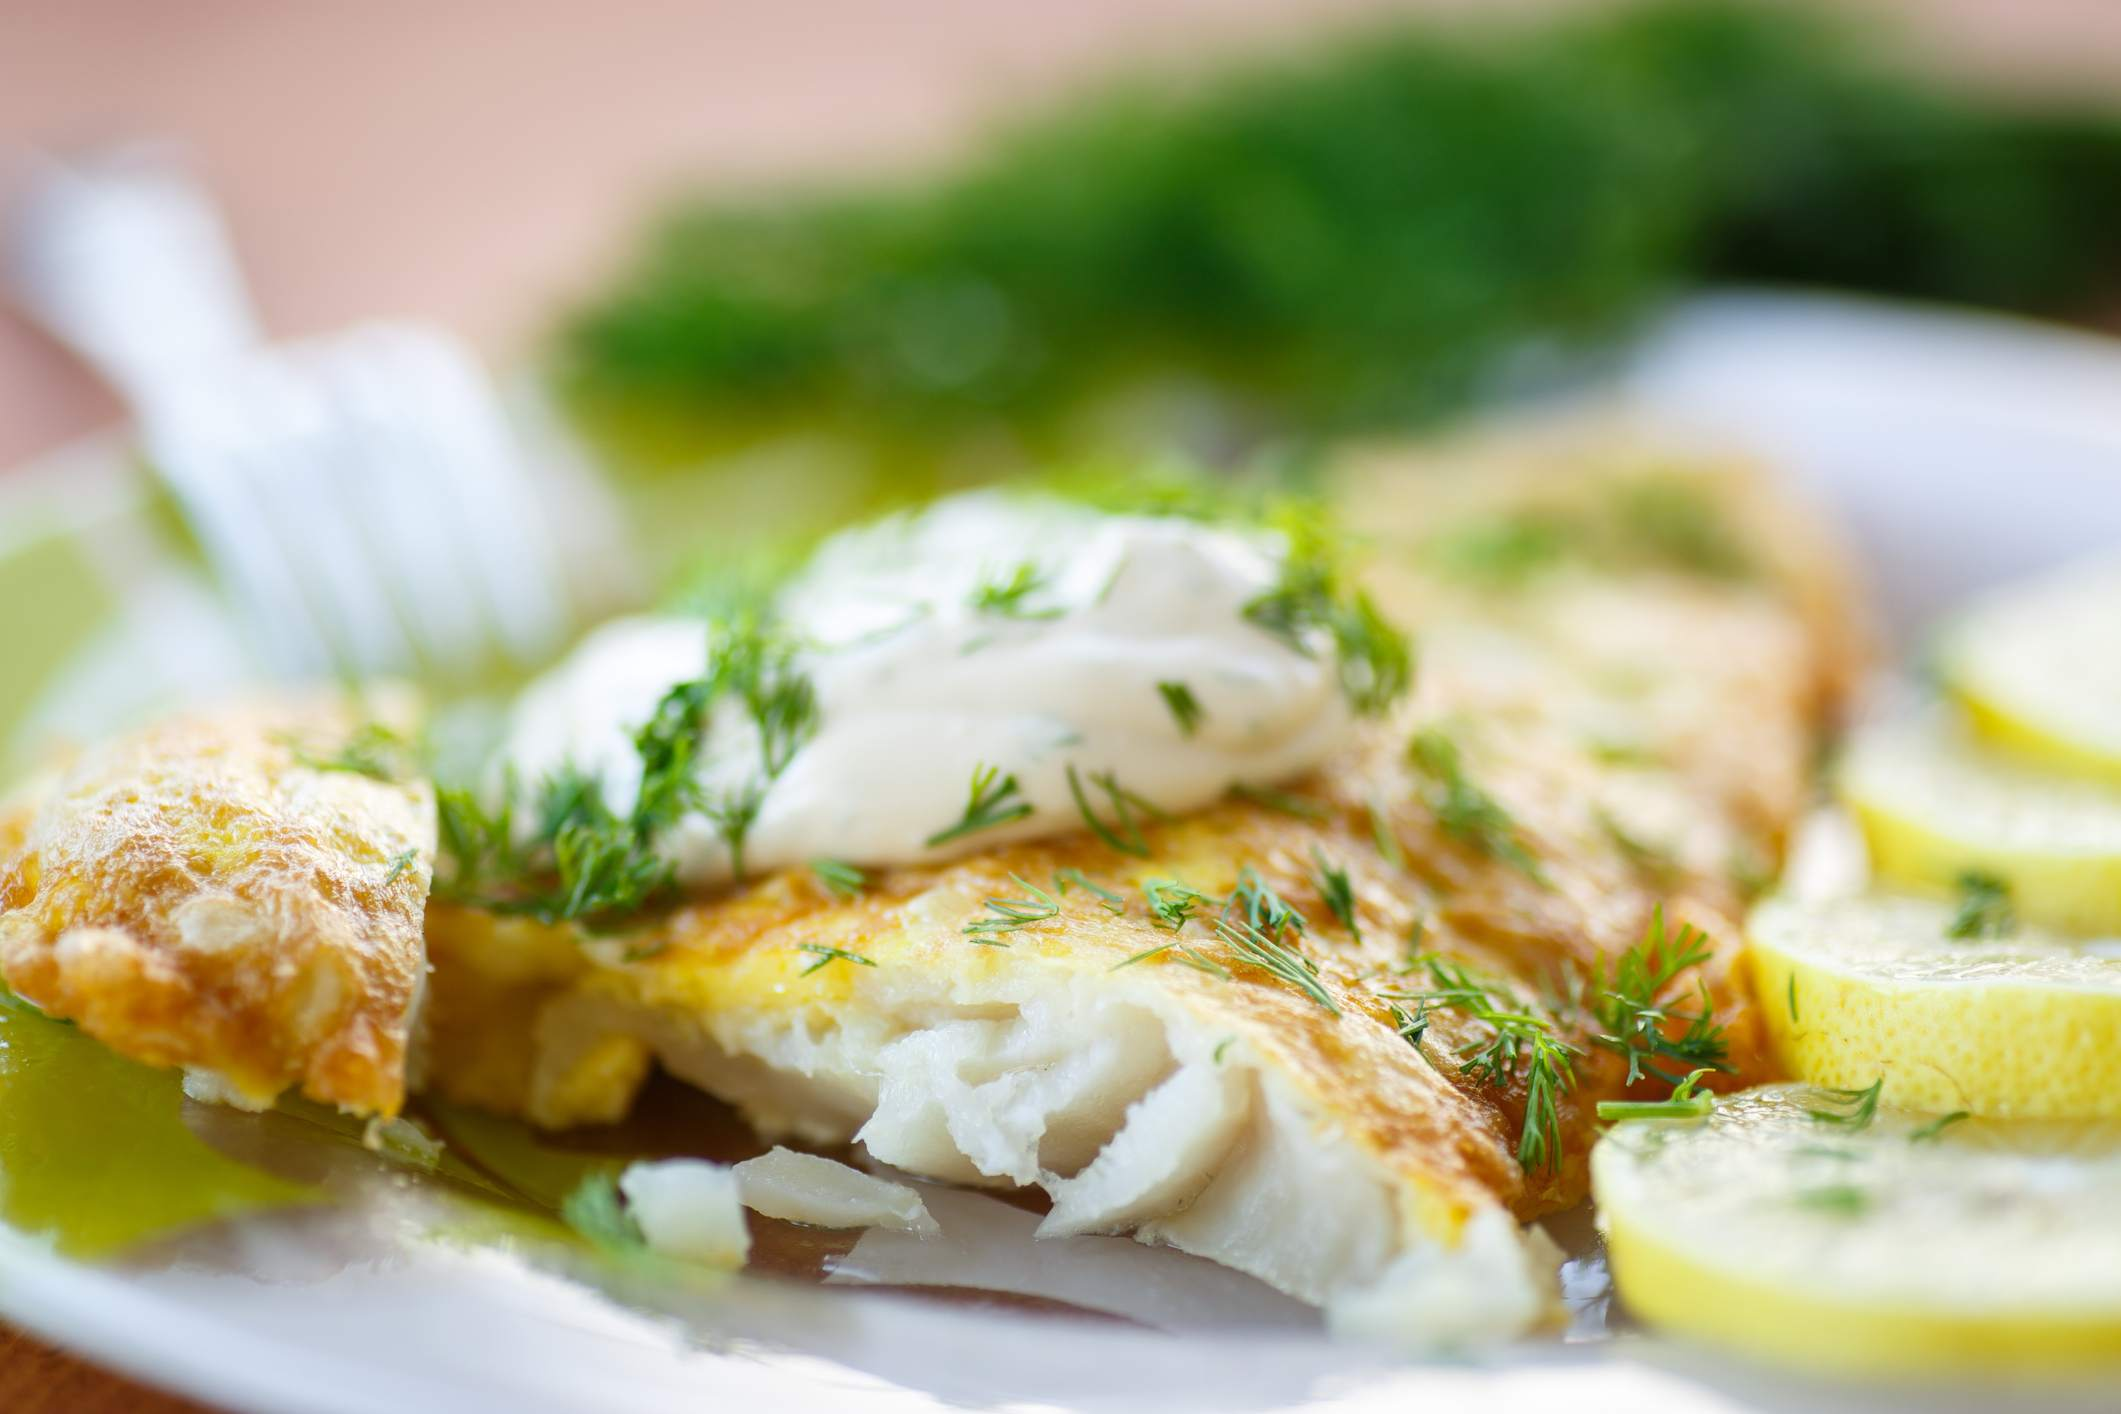 Spicy Grilled Tilapia With Aioli